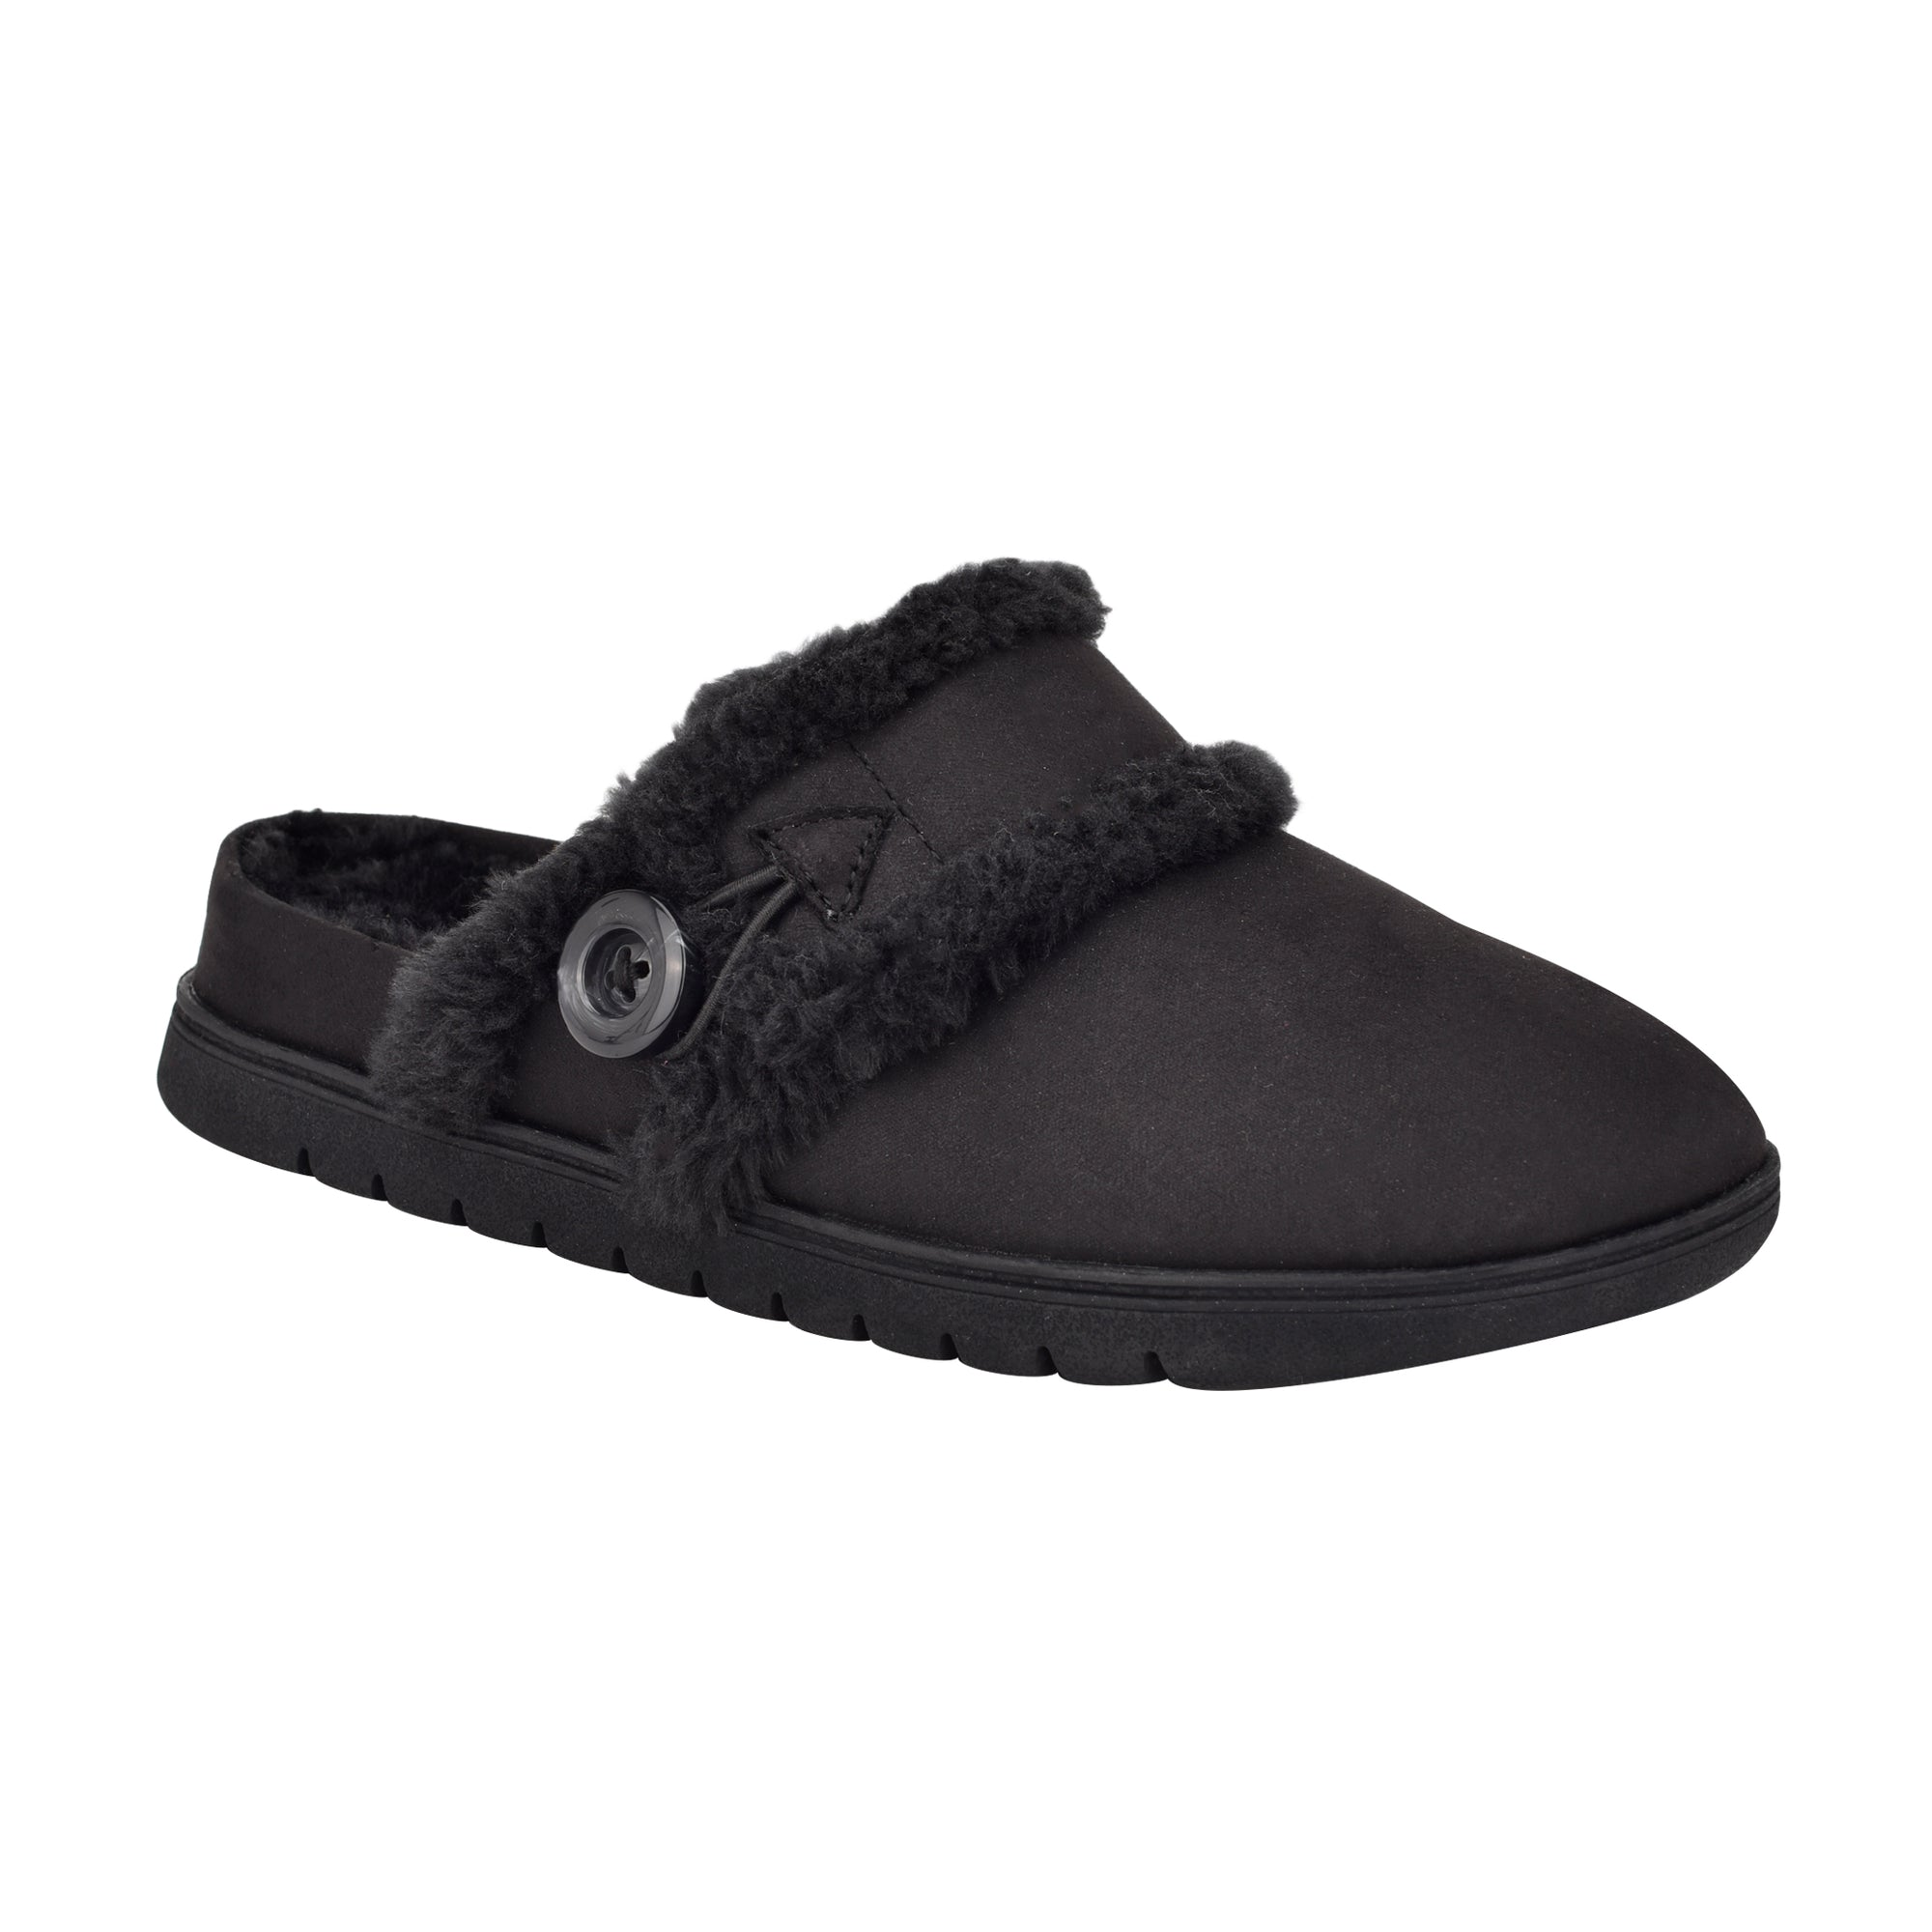 Season Slip-On Slippers